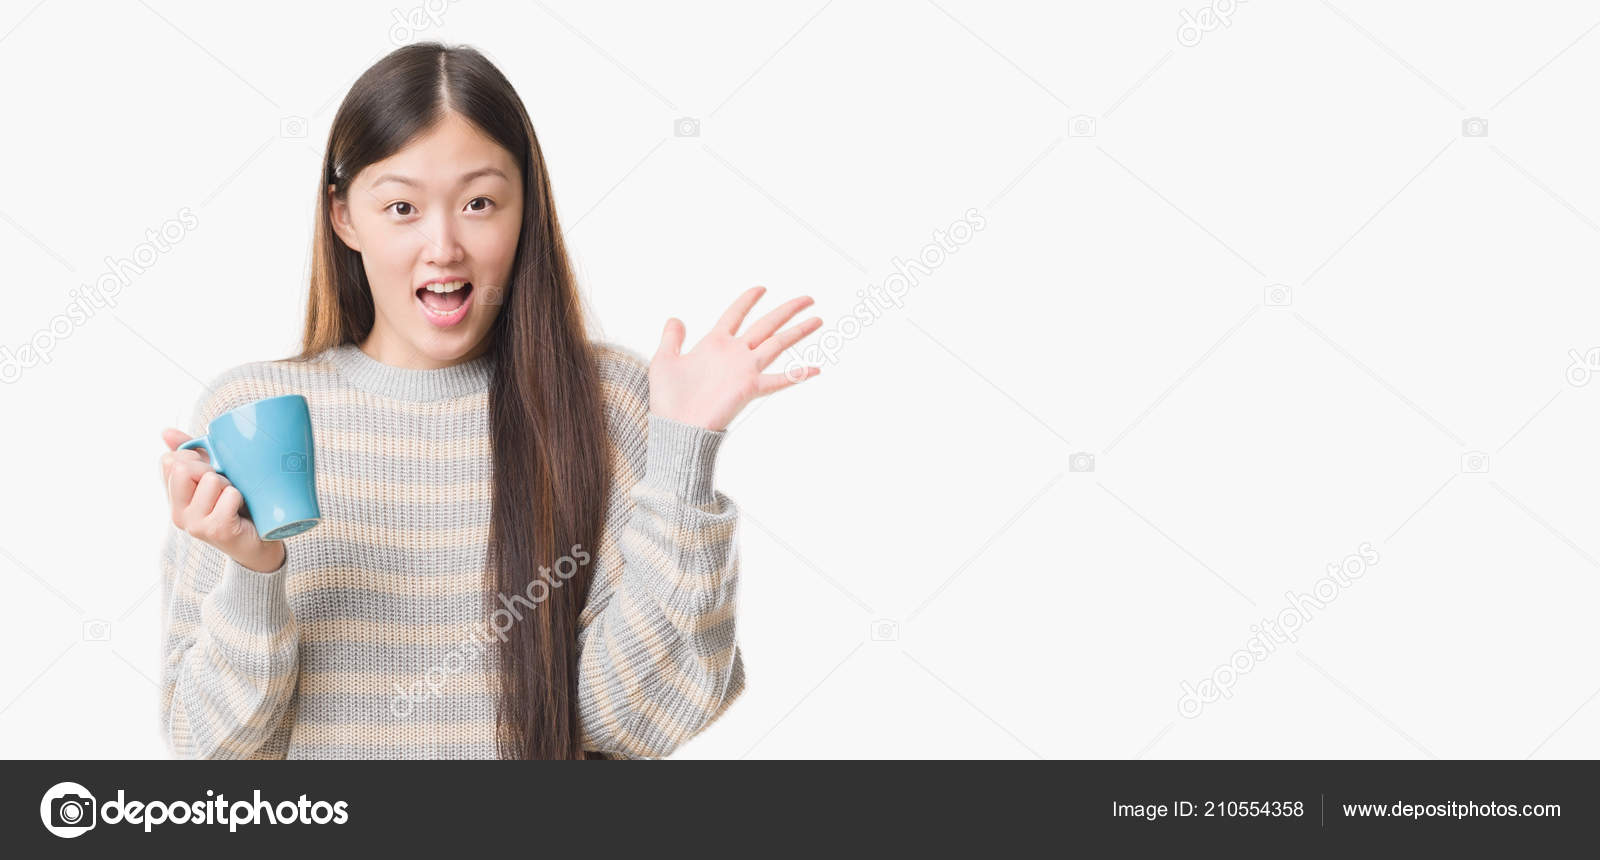 289c8a15987 Young Chinese woman over isolated background driking cup of coffee very  happy and excited, winner expression celebrating victory screaming with big  smile ...